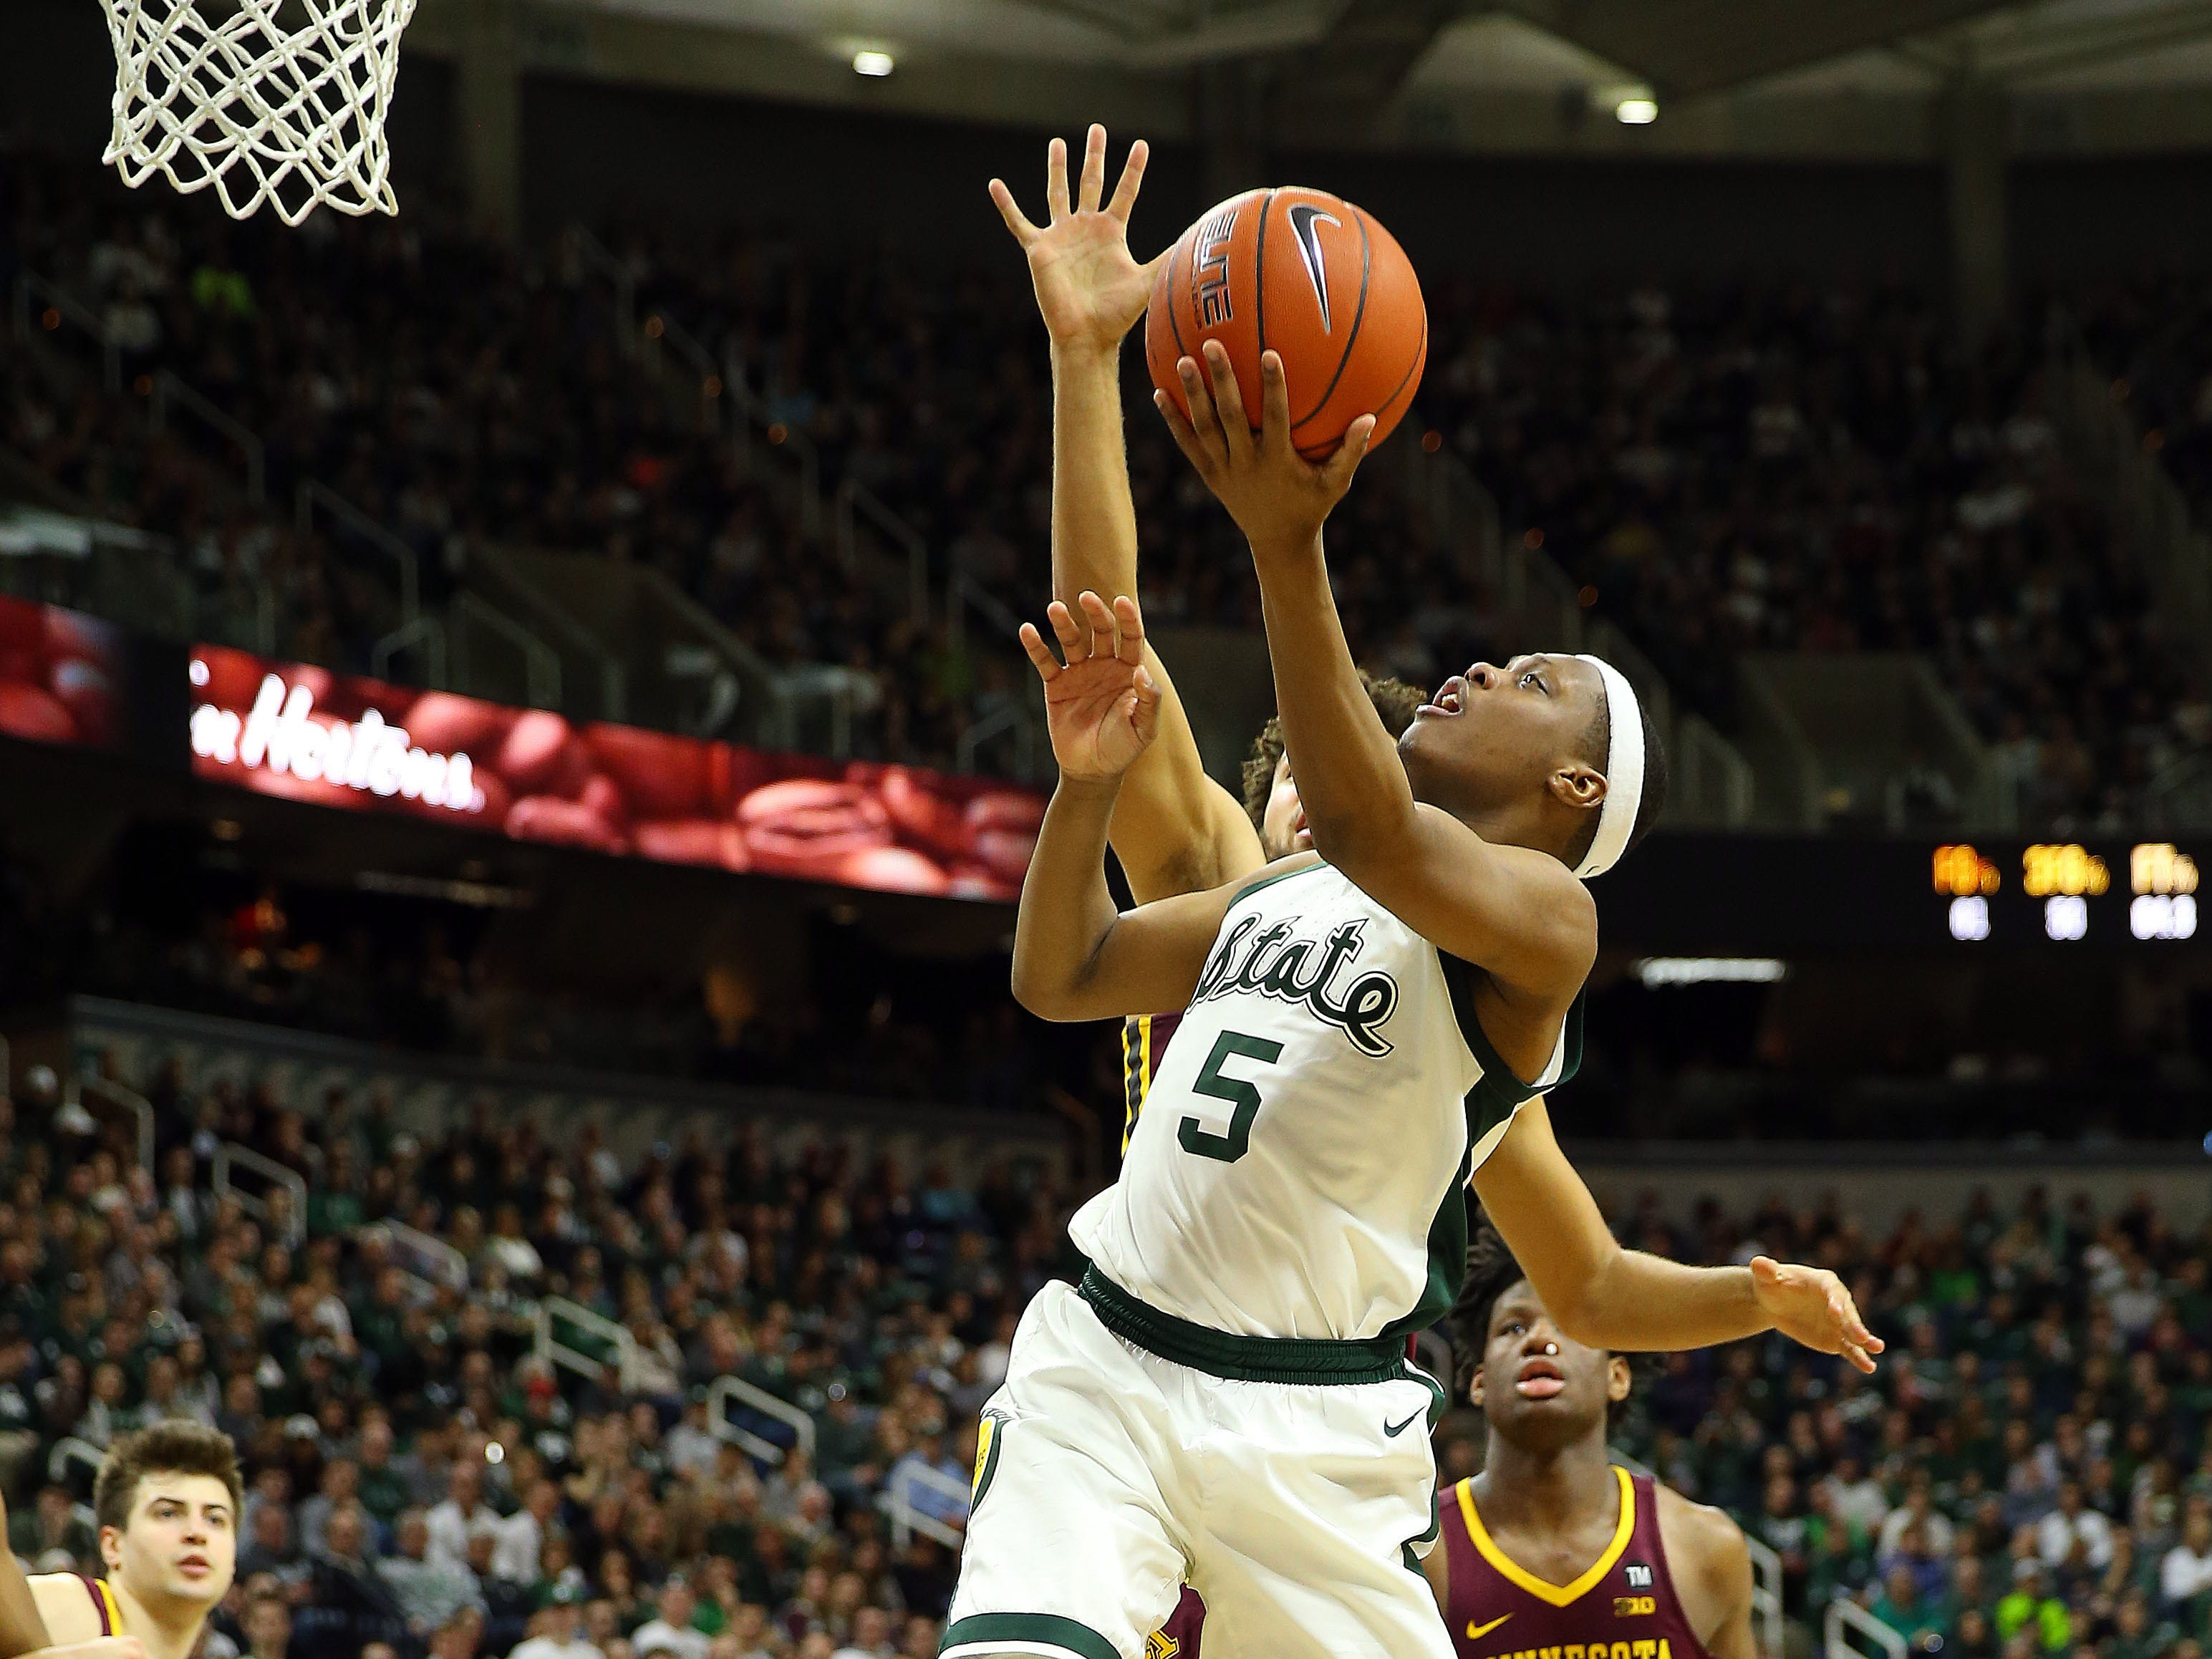 Michigan State guard Cassius Winston lays the ball up against Minnesota at the Breslin Center, Feb. 9, 2019.